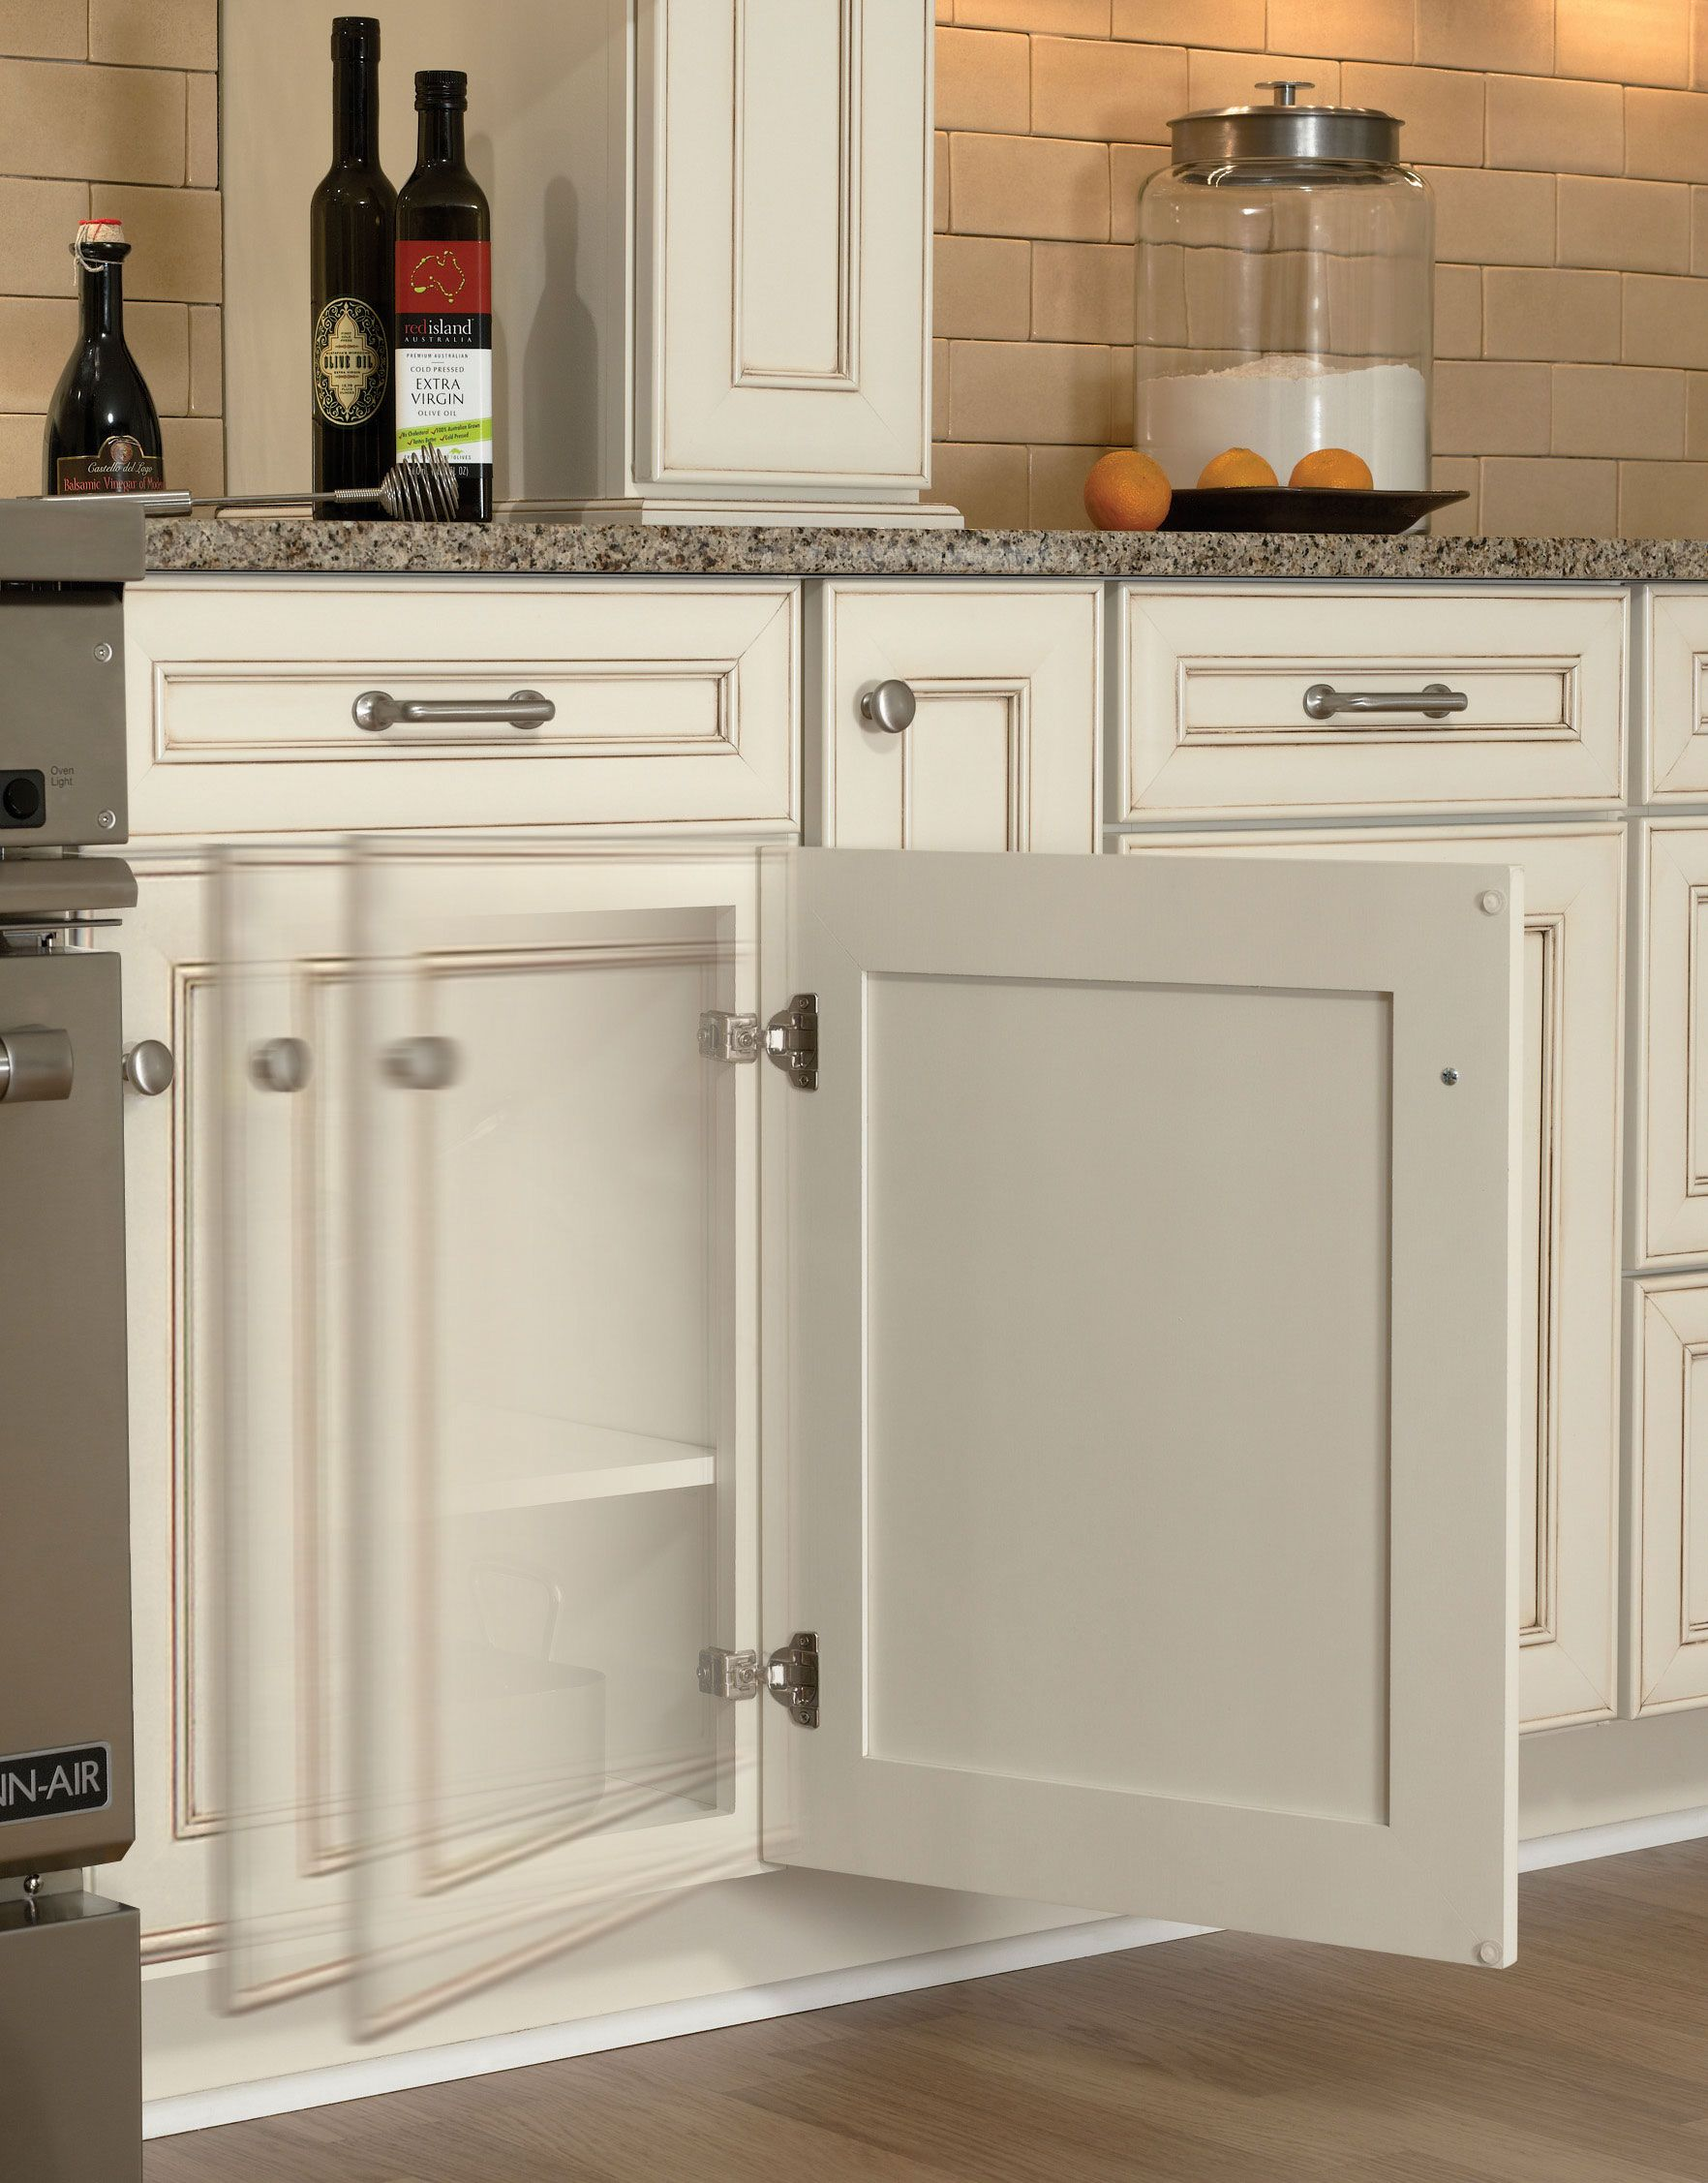 Delicieux Soft Close Cabinet Doors Make It Hard To Gauge The Mood Of The Room! #